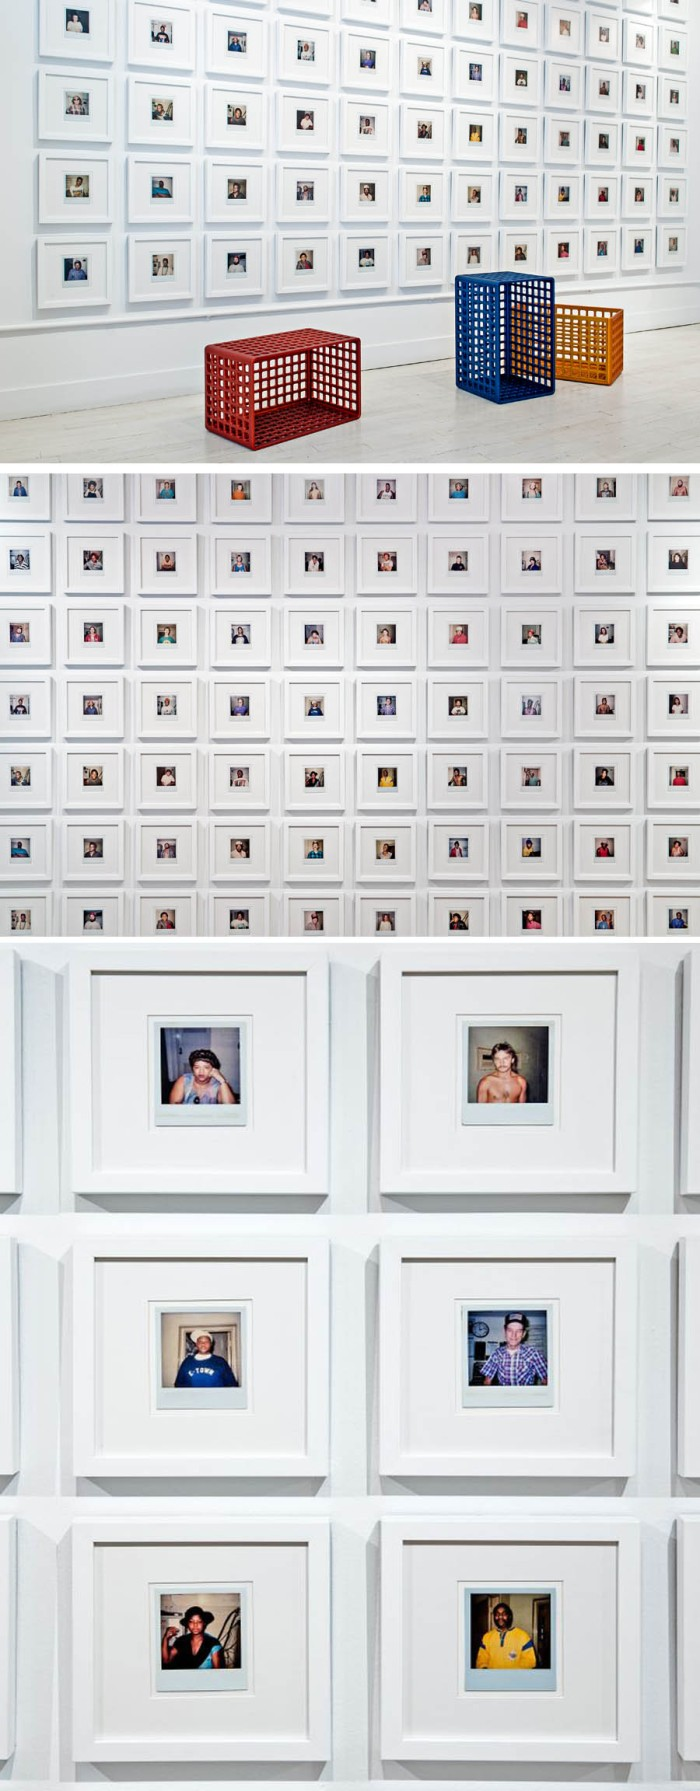 Installation with photos of prisoners in their cells, Cells by Frederick McSwain, NY Design Week 2012